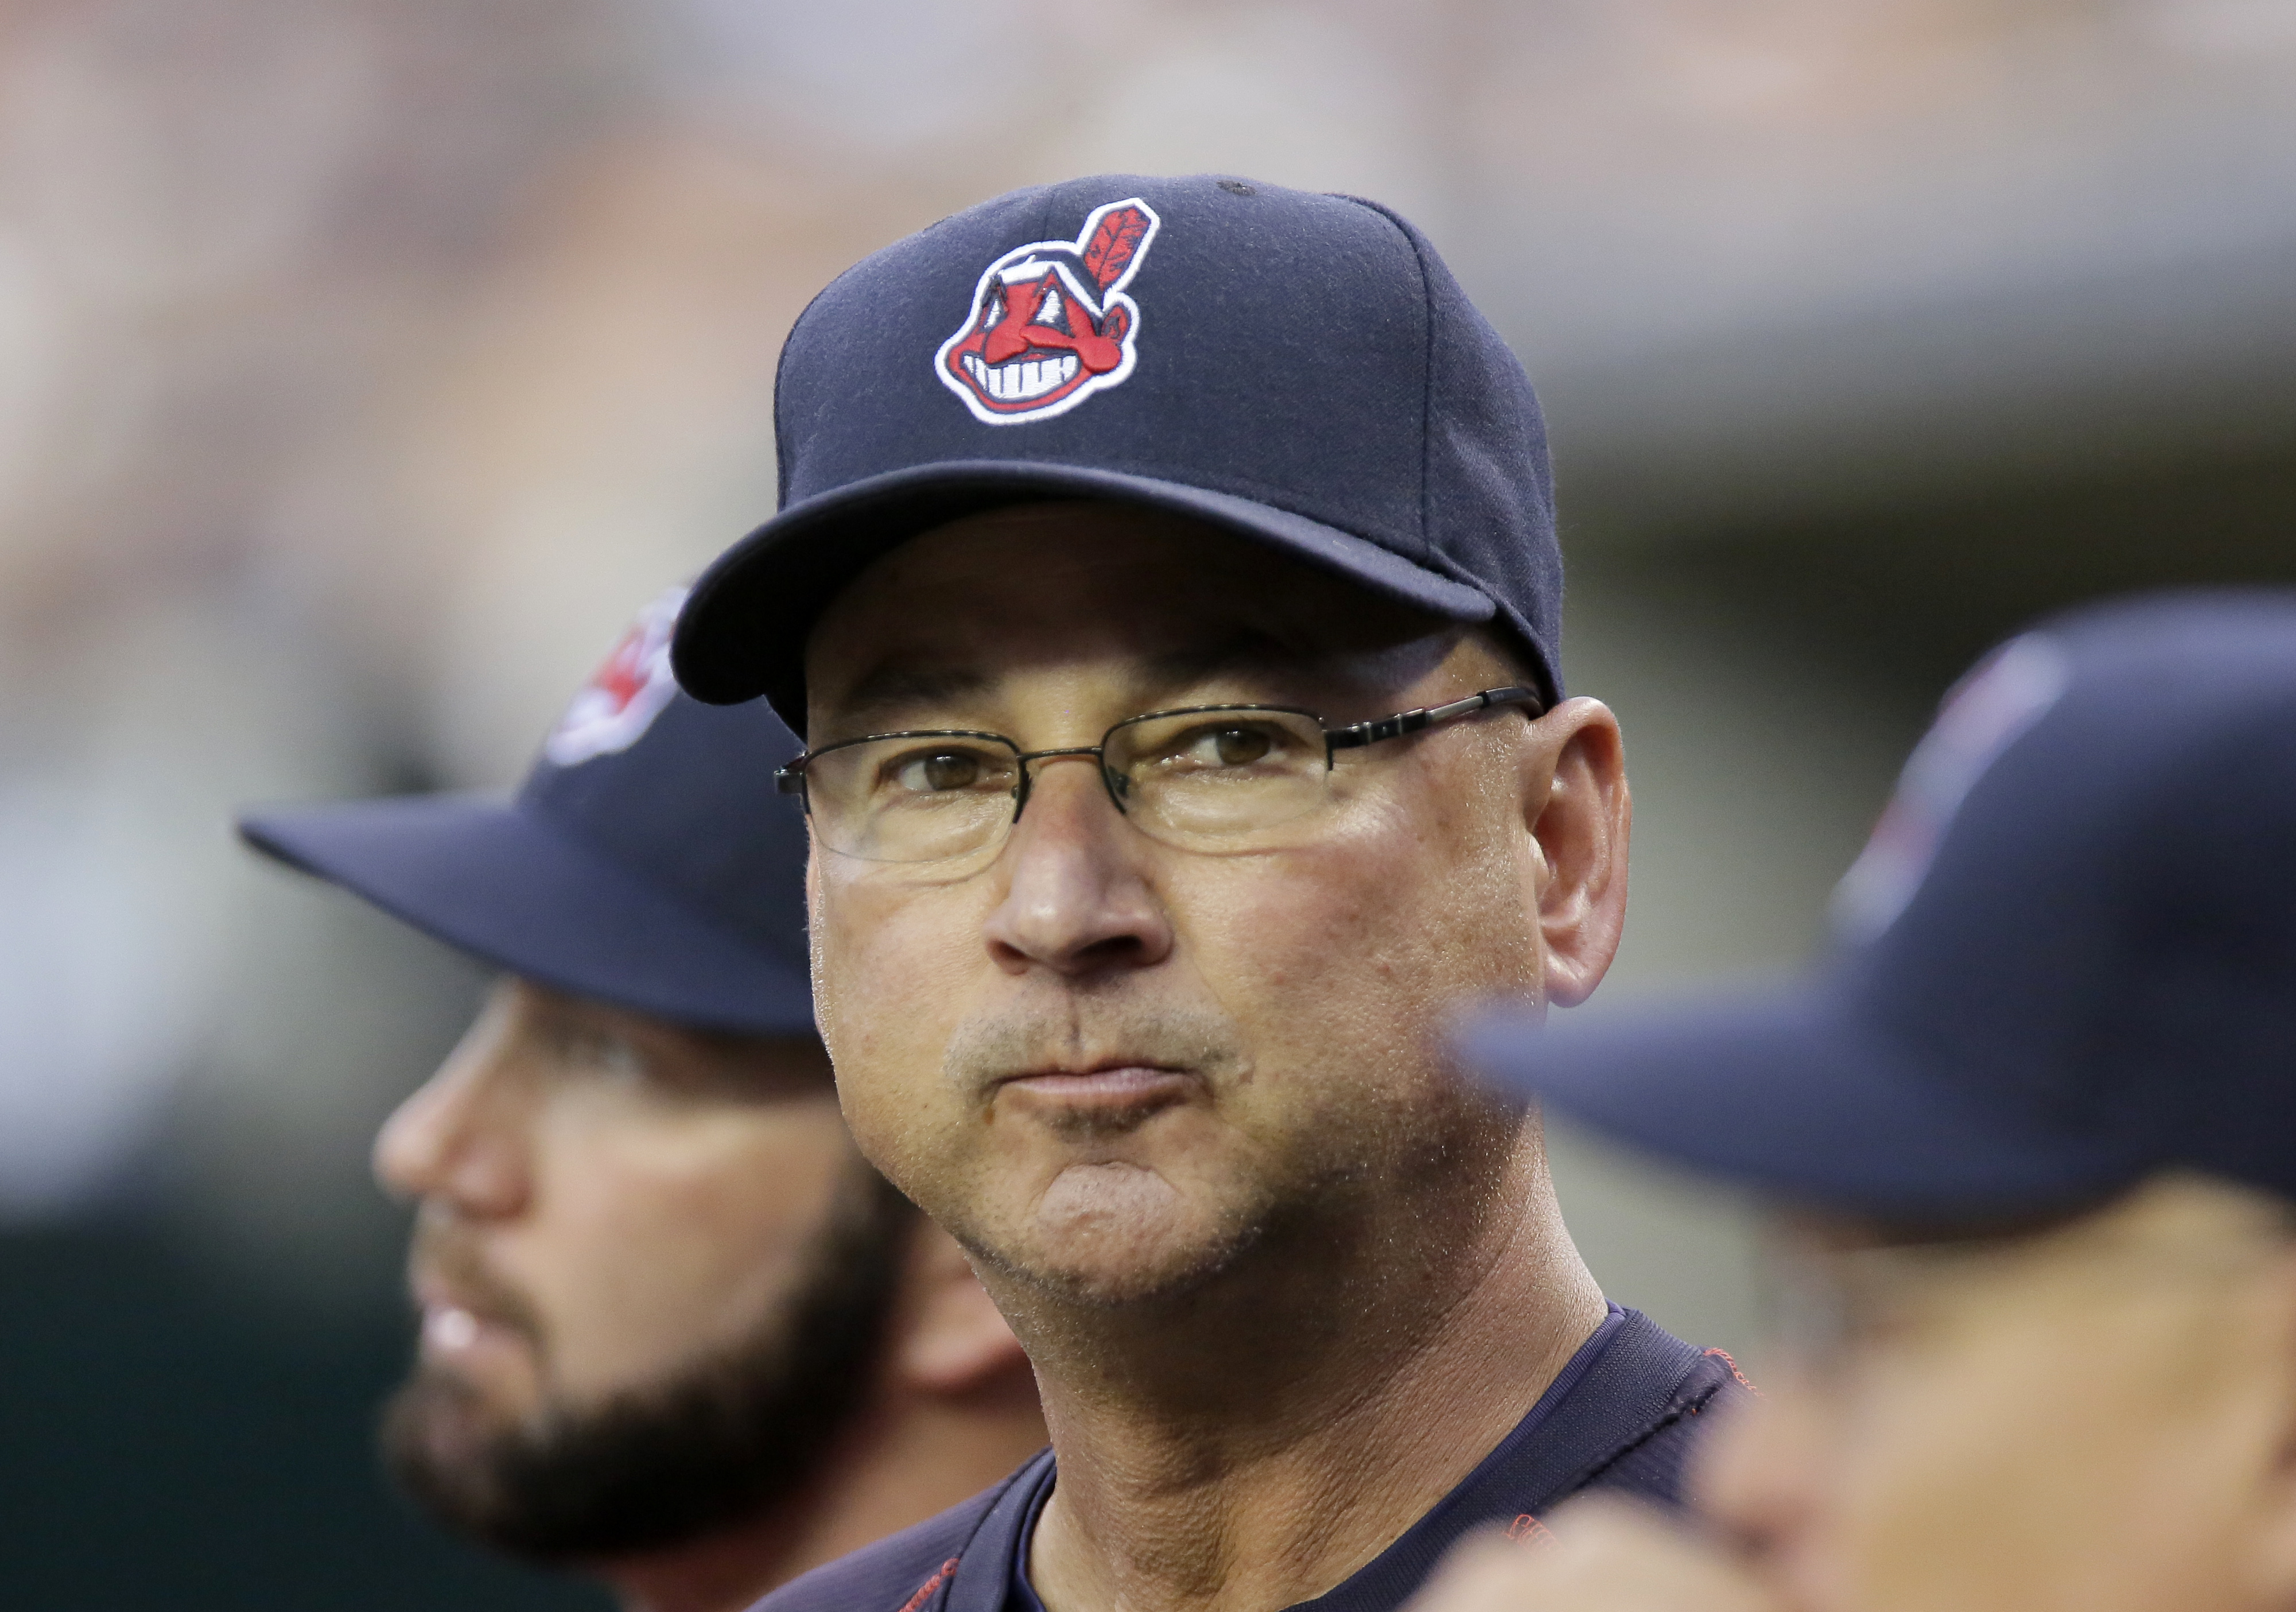 Cleveland Indians manager Terry Francona watches from the dugout during their game against the Detroit Tigers of a baseball game Friday, June 12, 2015, in Detroit. (AP Photo/Duane Burleson)